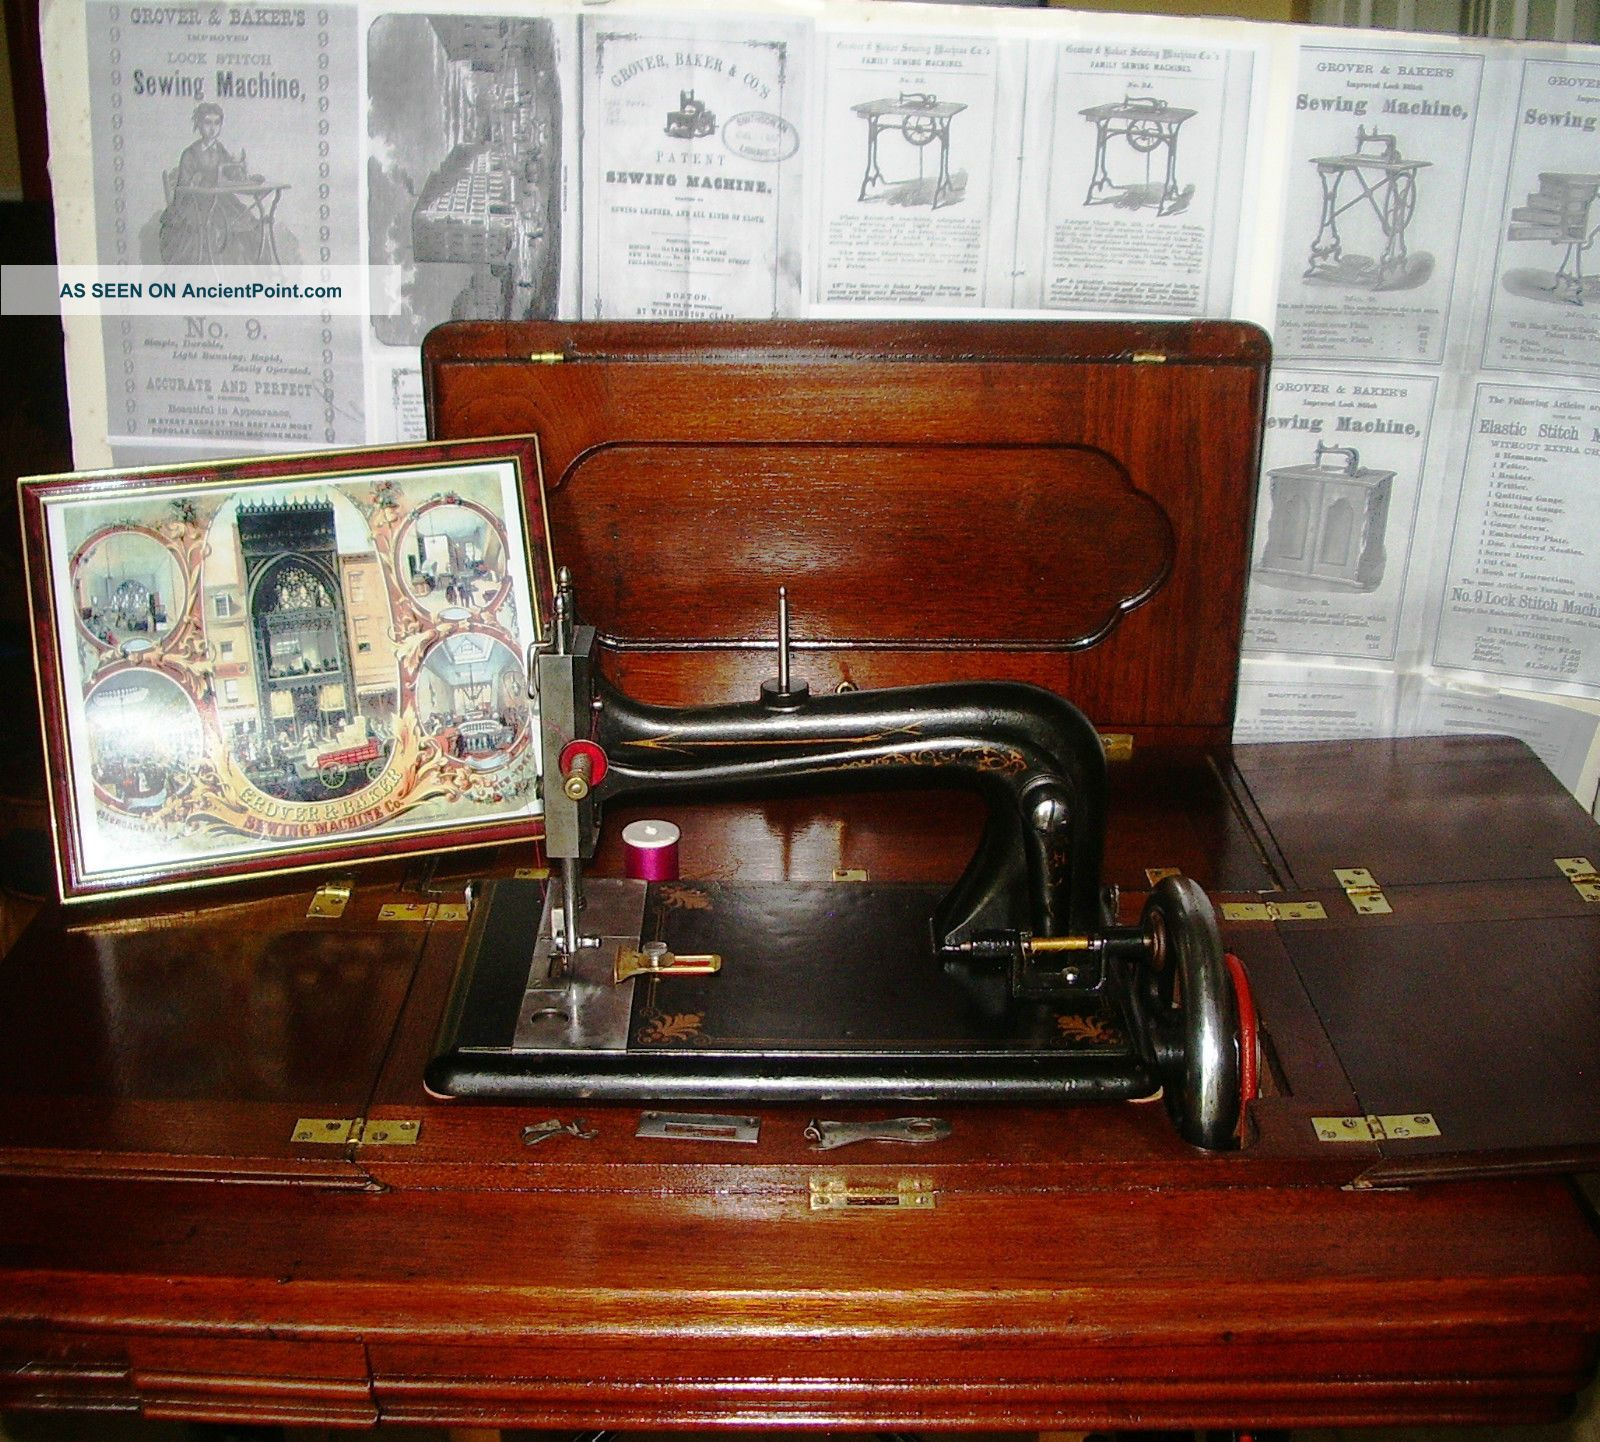 Exquisite Grover&baker C 1870 9 Functional Antique Sewing Machine,  Unfolding Cab Sewing Machines photo